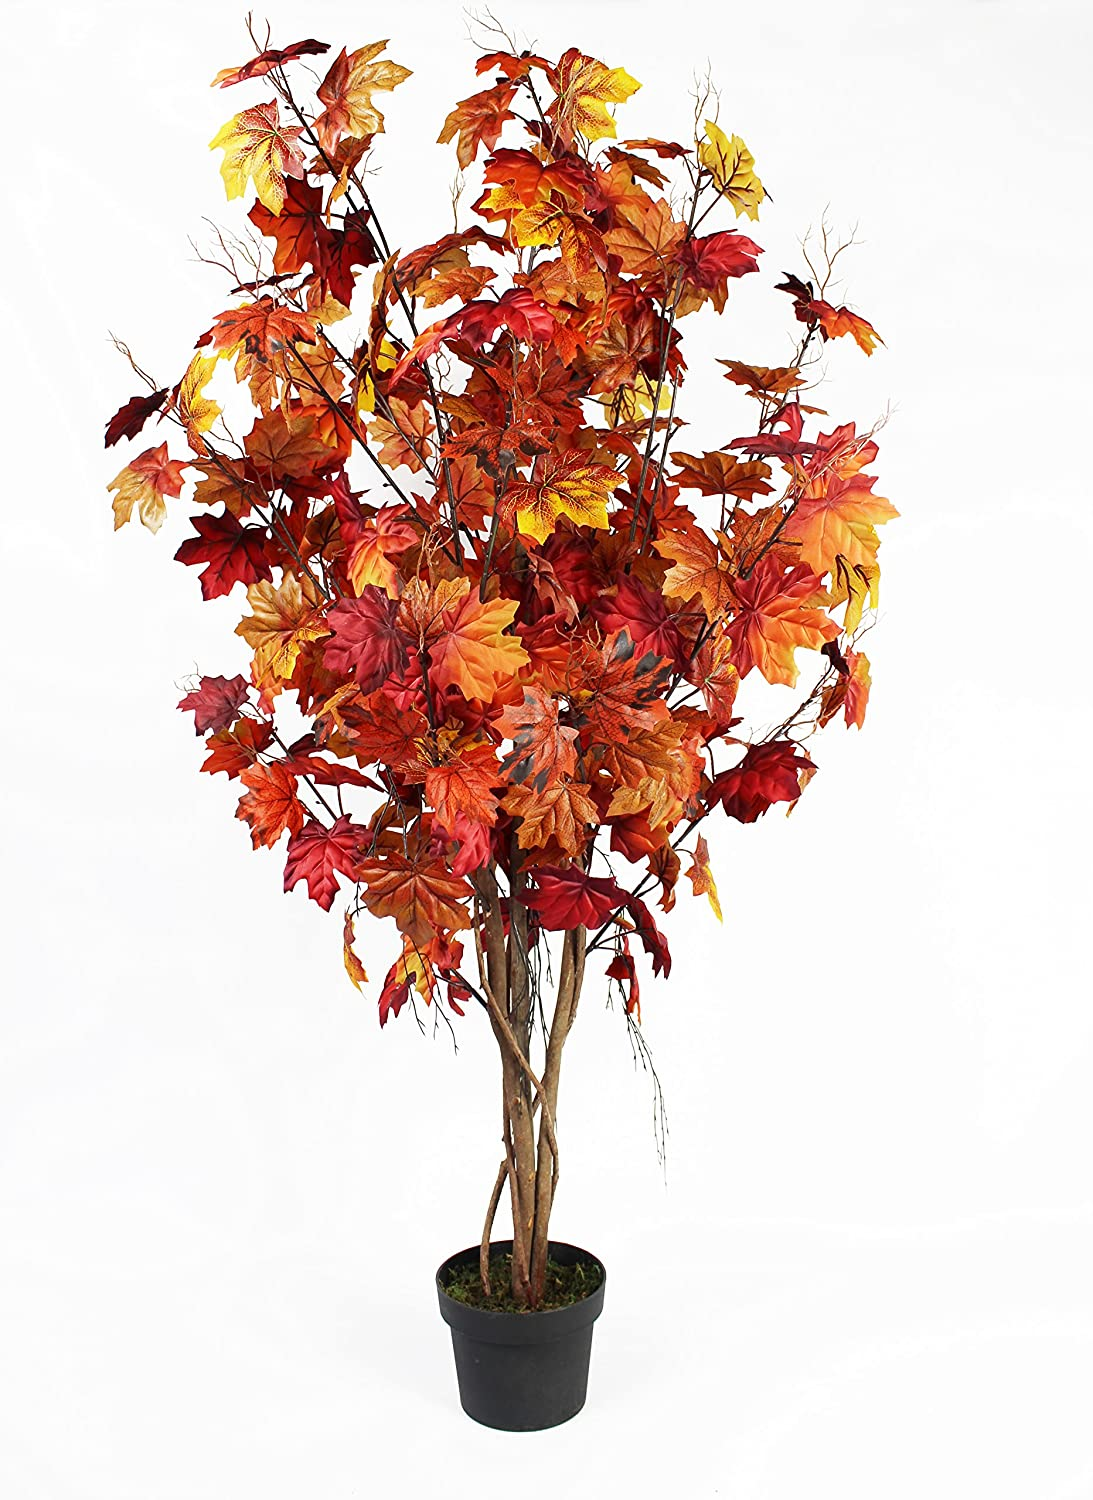 Artificial Japanese Maple Tree 4ft/120cm with Real Wood Trunk Greenbrokers Limited 164839